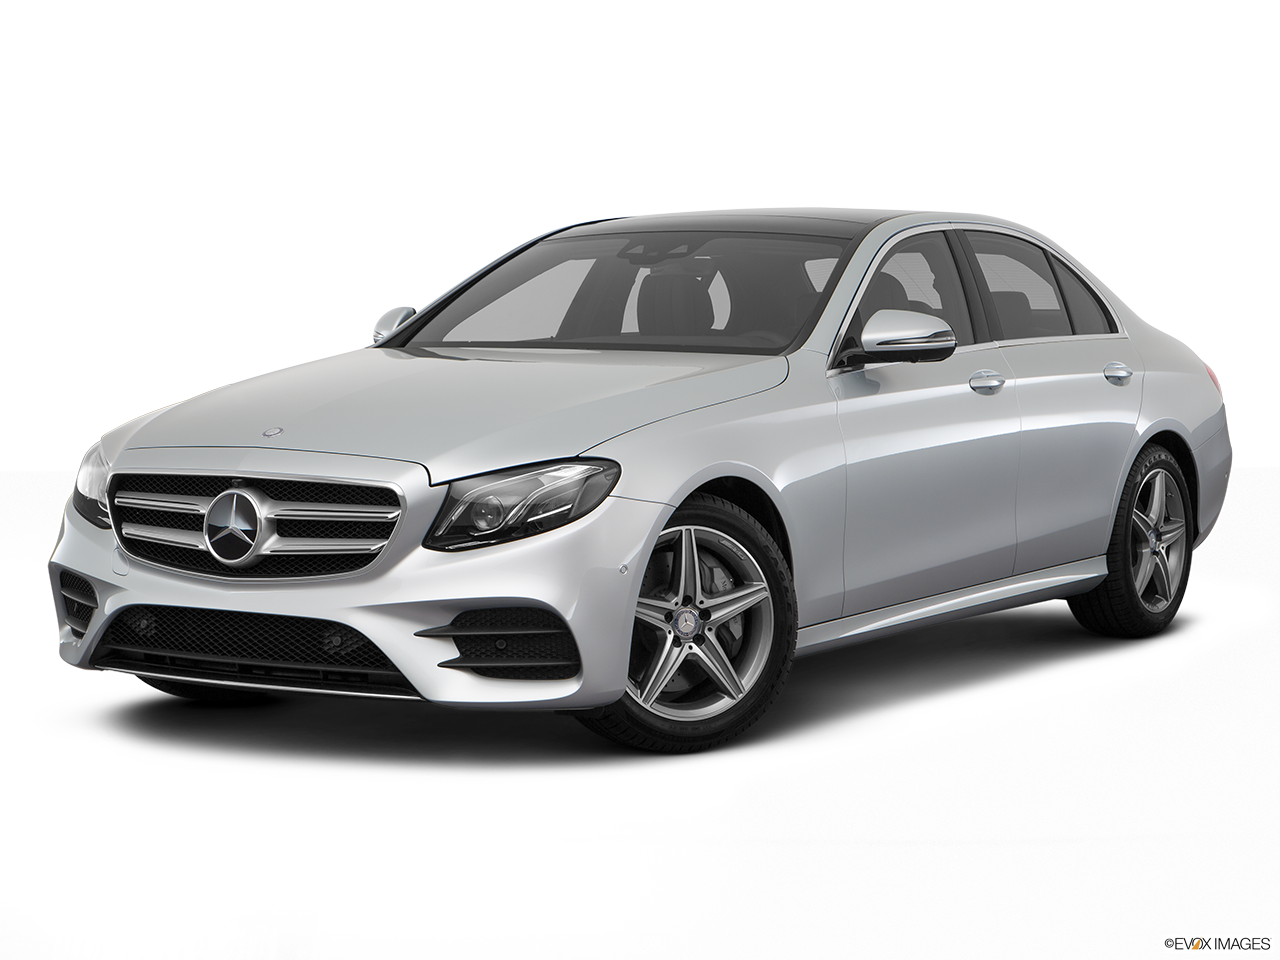 Test Drive A 2017 Mercedes-Benz E300 at Wagner Mercedes-Benz of Shrewsbury in Shrewsbury